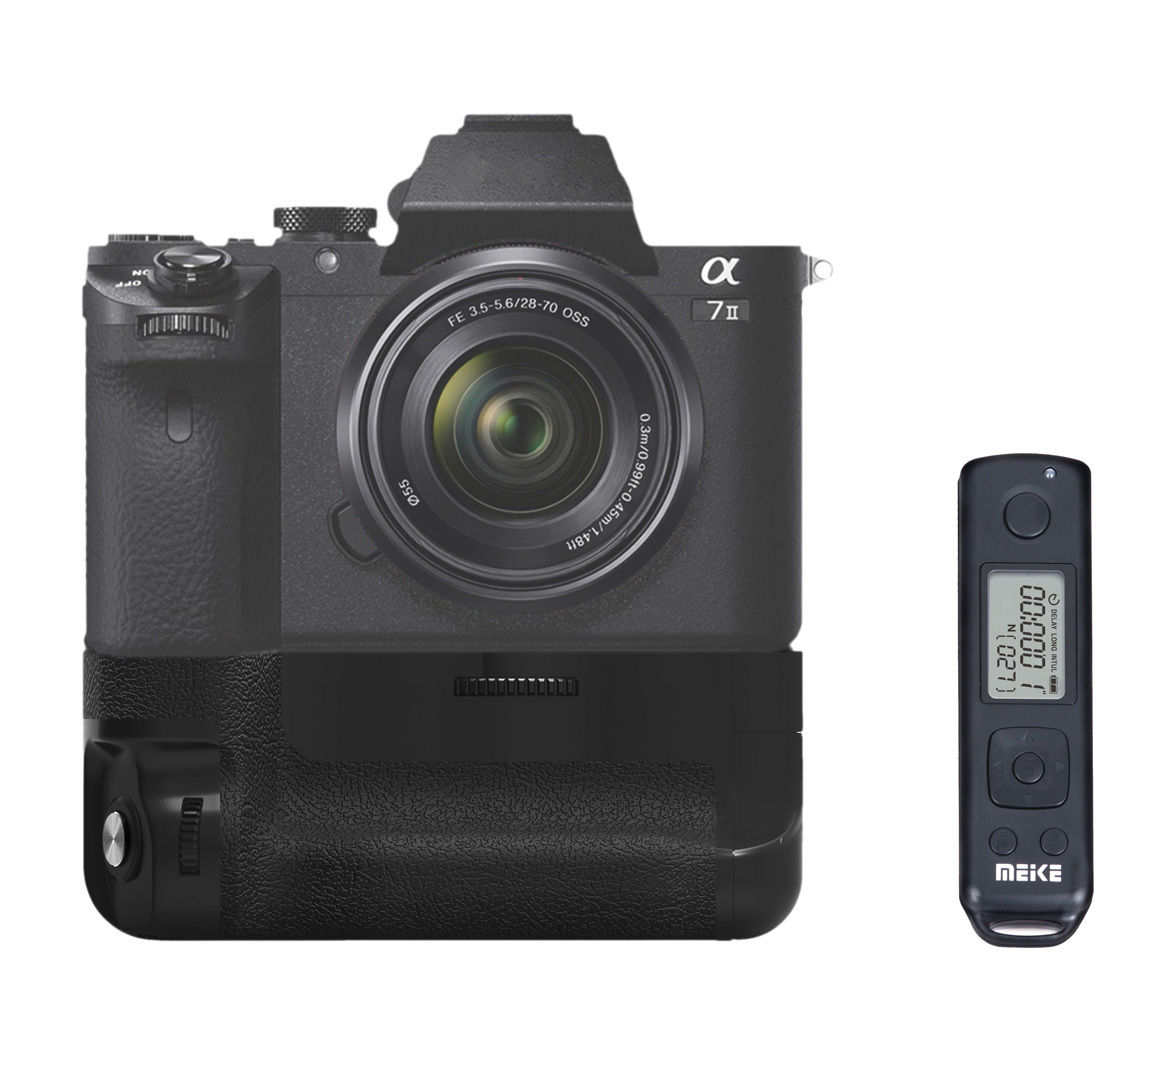 Meike MK-A7II Pro Built-in Wireless Control Battery Grip for Sony A7 II A7R II A7S II as for Sony VG-C2EM meike mk dr750 built in 2 4g wireless control battery grip for nikon d750 as mb d16 wireless remote